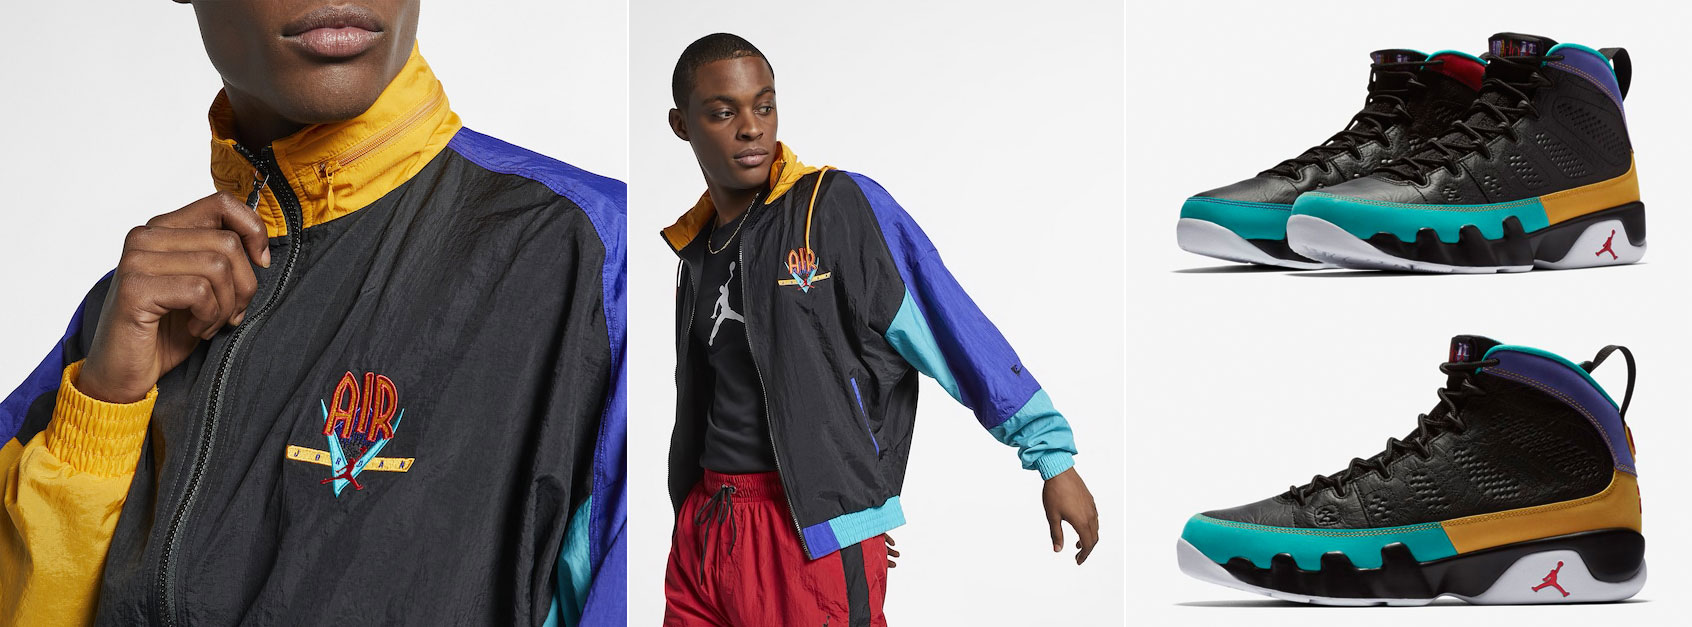 air-jordan-9-dream-it-do-it-jacket